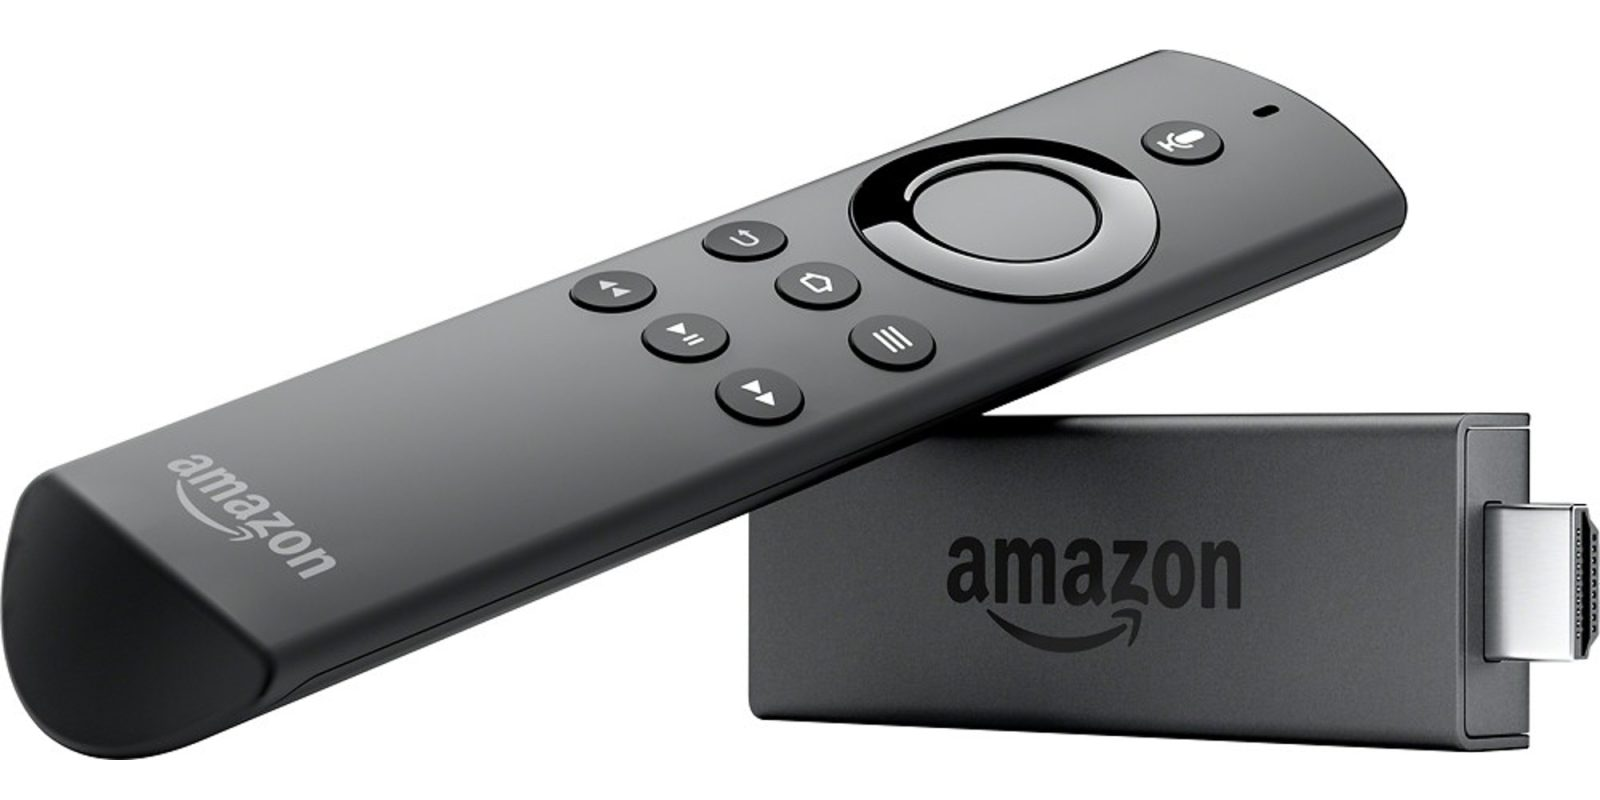 Amazon Fire TV Stick delivers your favorite streaming services: $20 (Reg. $40)